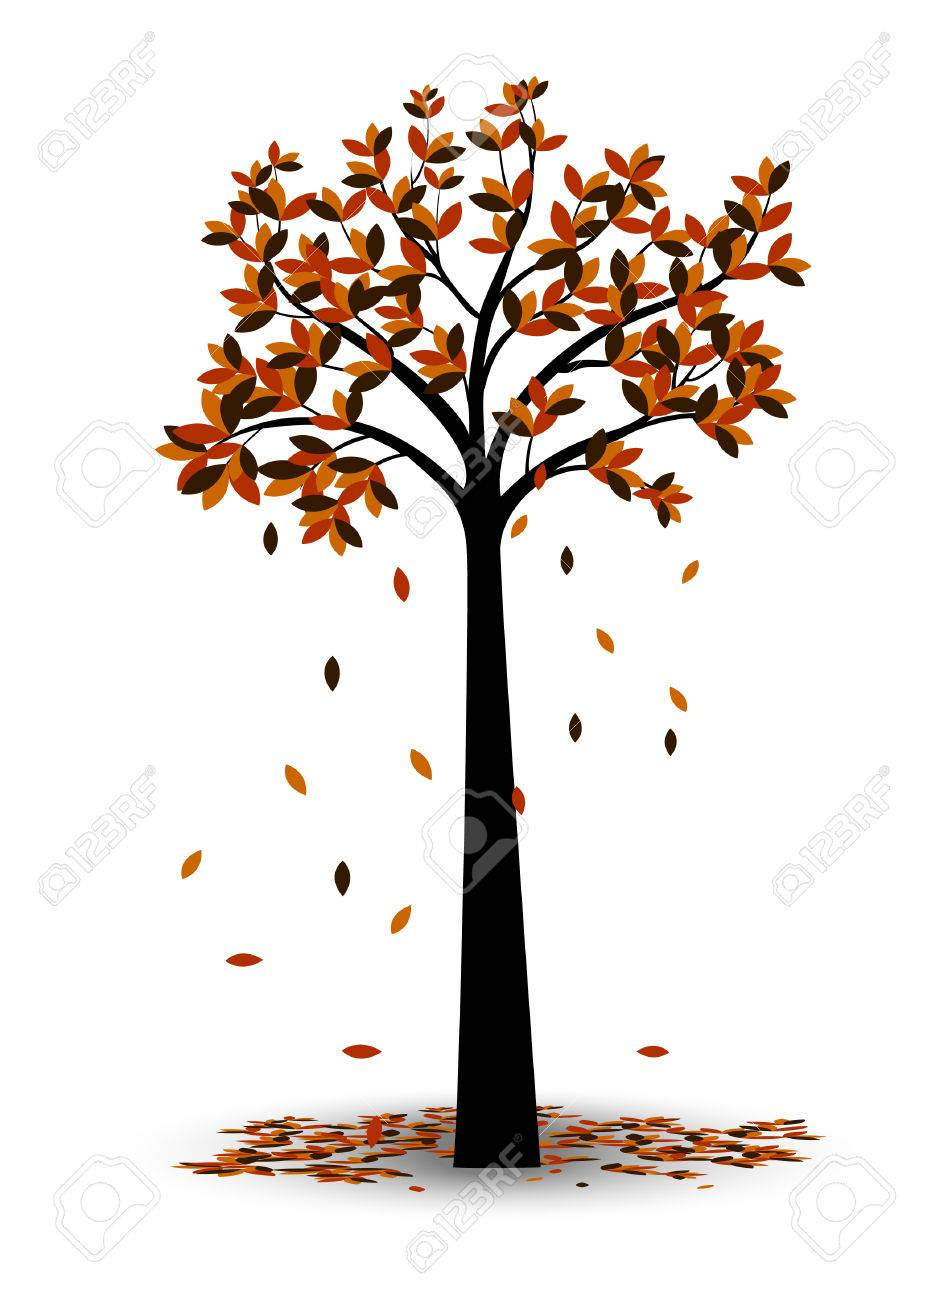 Decorative Autumn Tree Silhouette With Brown Leaves Royalty Free Cliparts Vectors And Stock Illustration Image 45709317